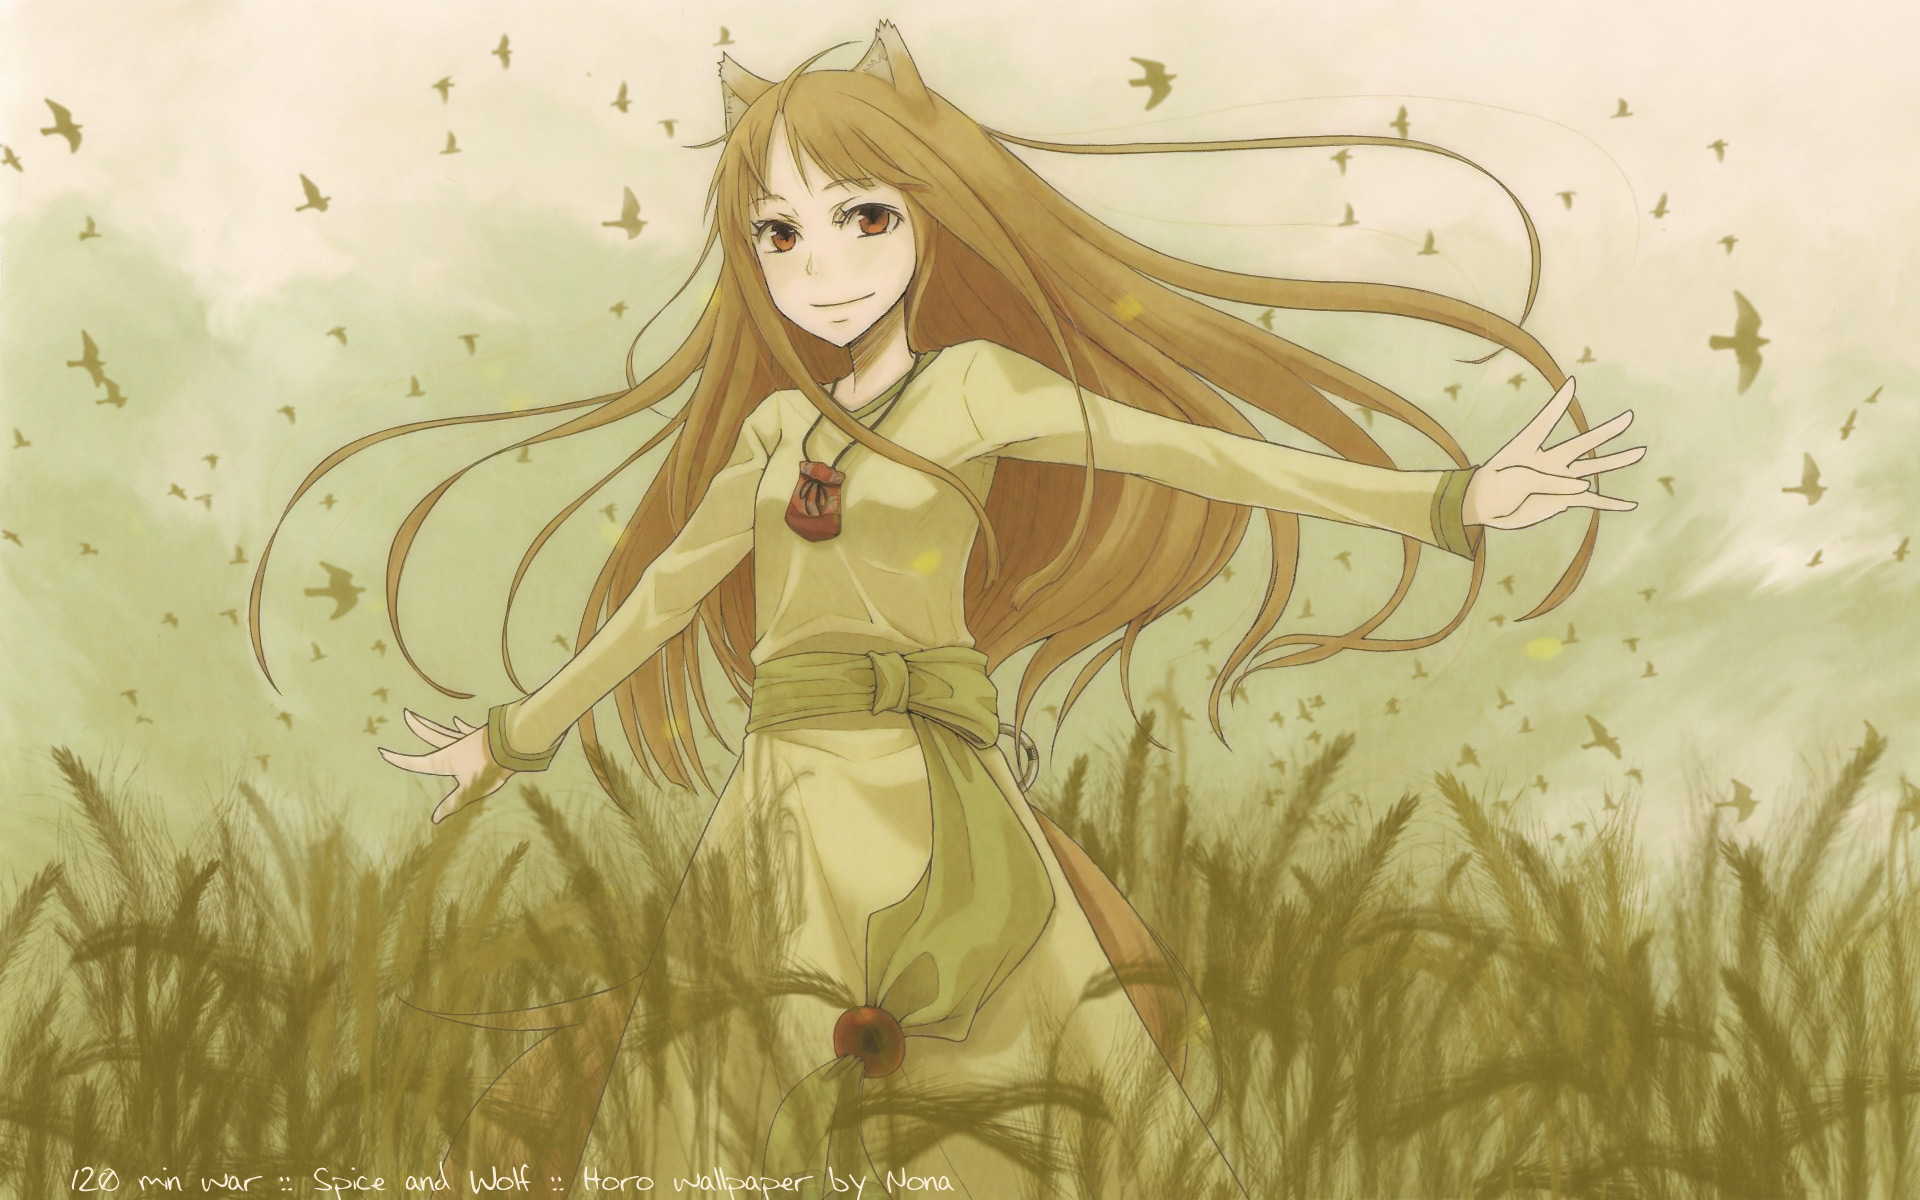 Spice and wolf wolf form - photo#25